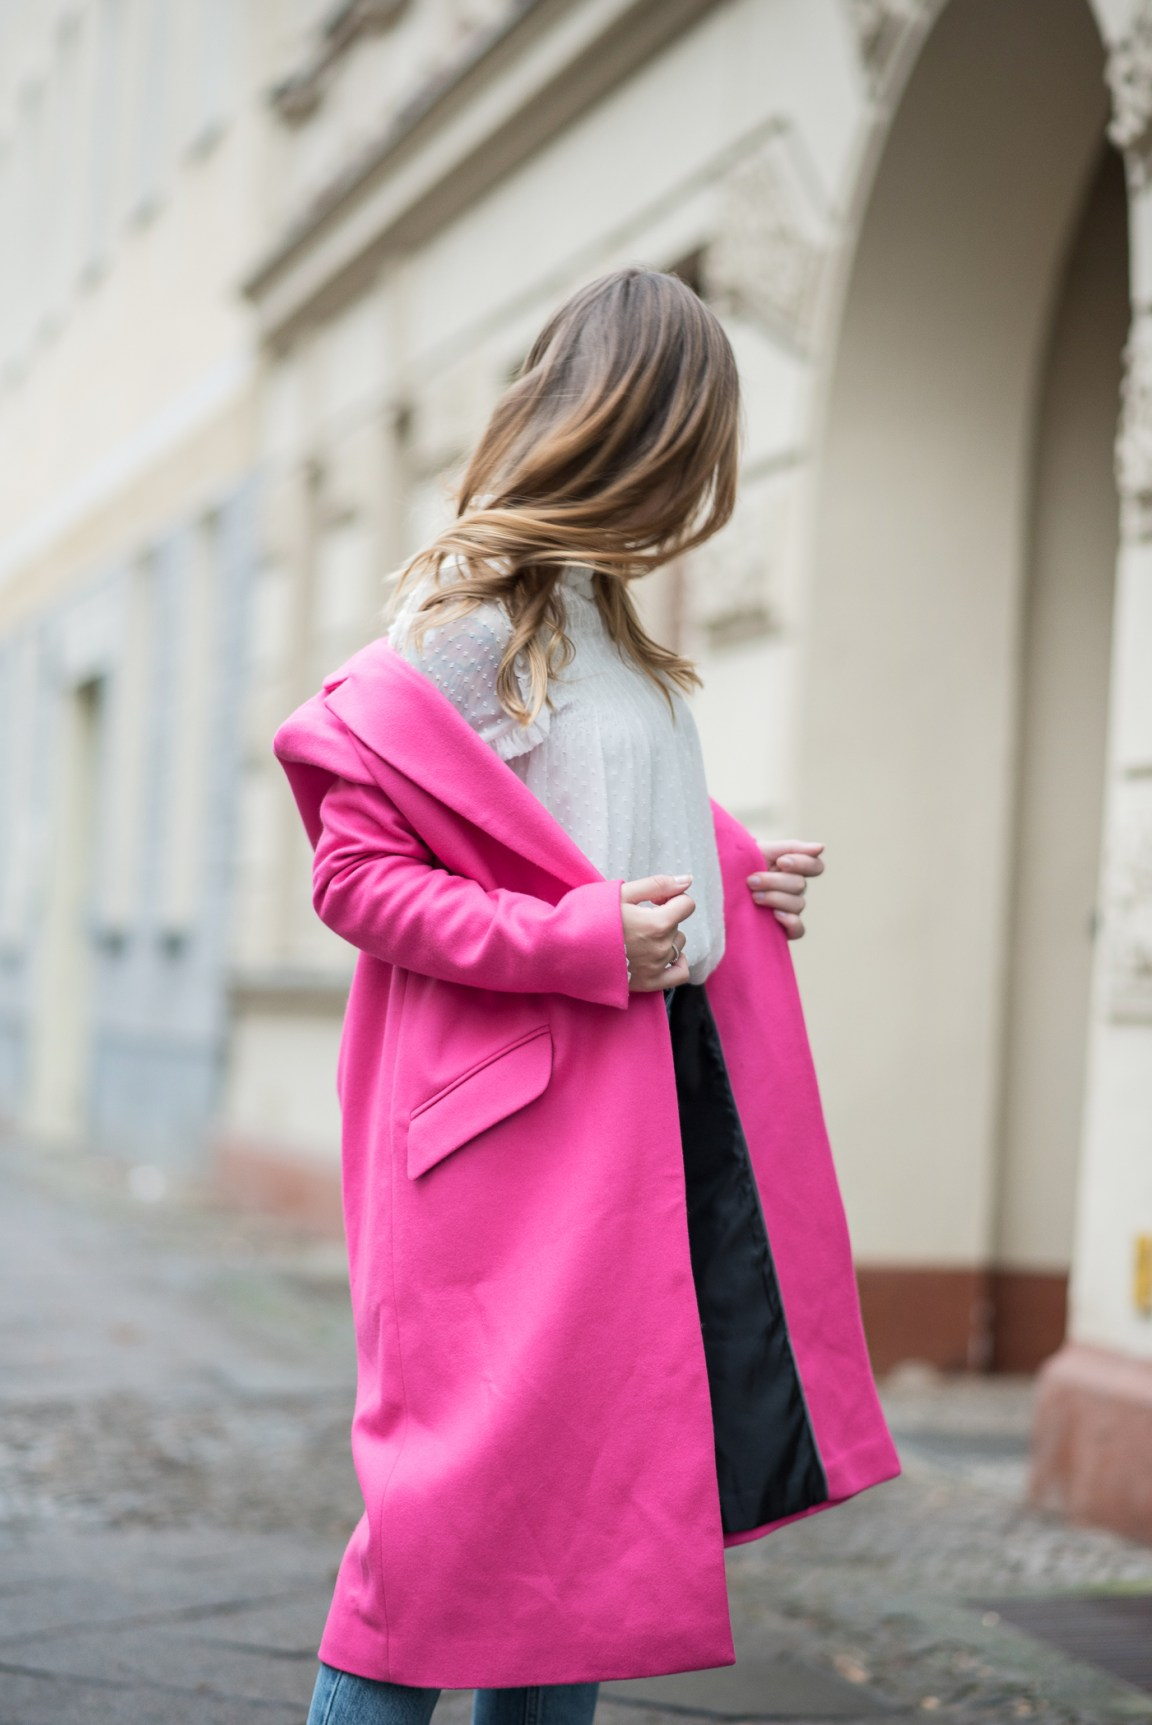 on_monday_wear_pink_topshop_coat_5